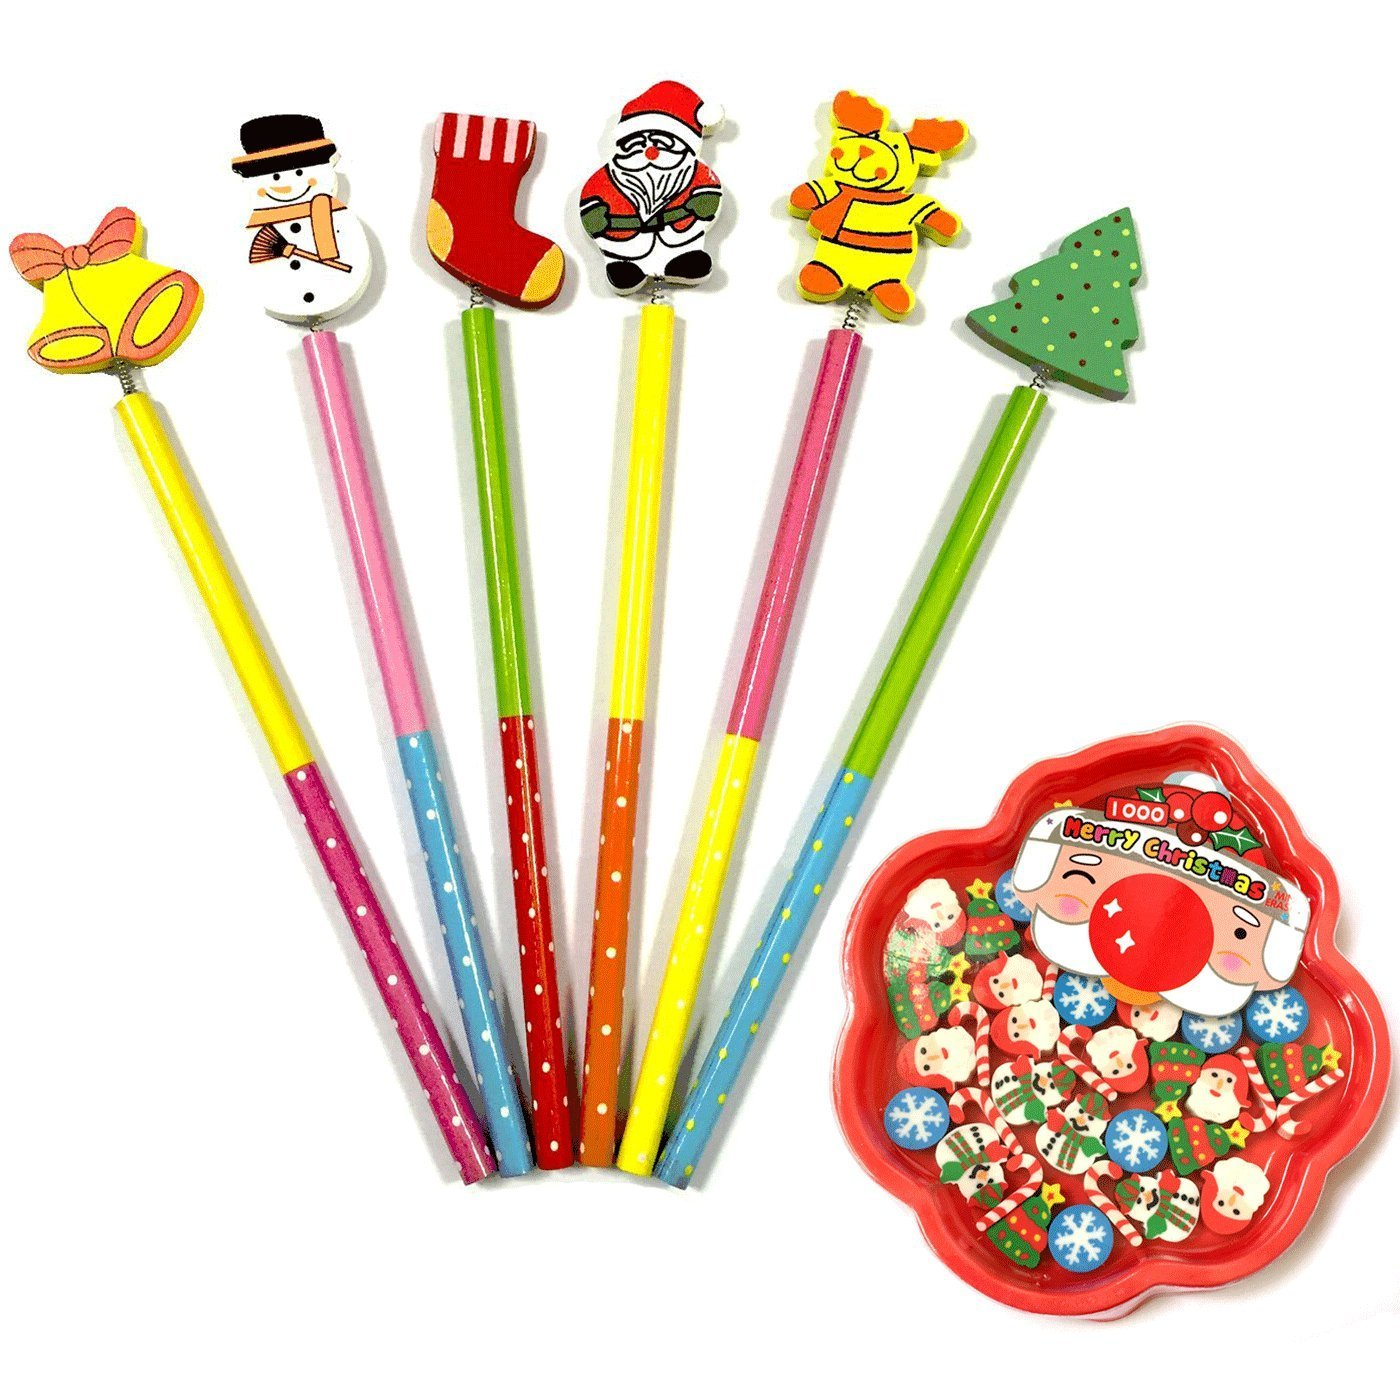 OPOCC Kid's Students Christmas Gift Set, Mini erasers rubber, 6pc wood Christmas theme decoration pencils,Classroom giveaways, Cute Cool Novelty Christmas Cartoon Decor Pencil Office School Supplies